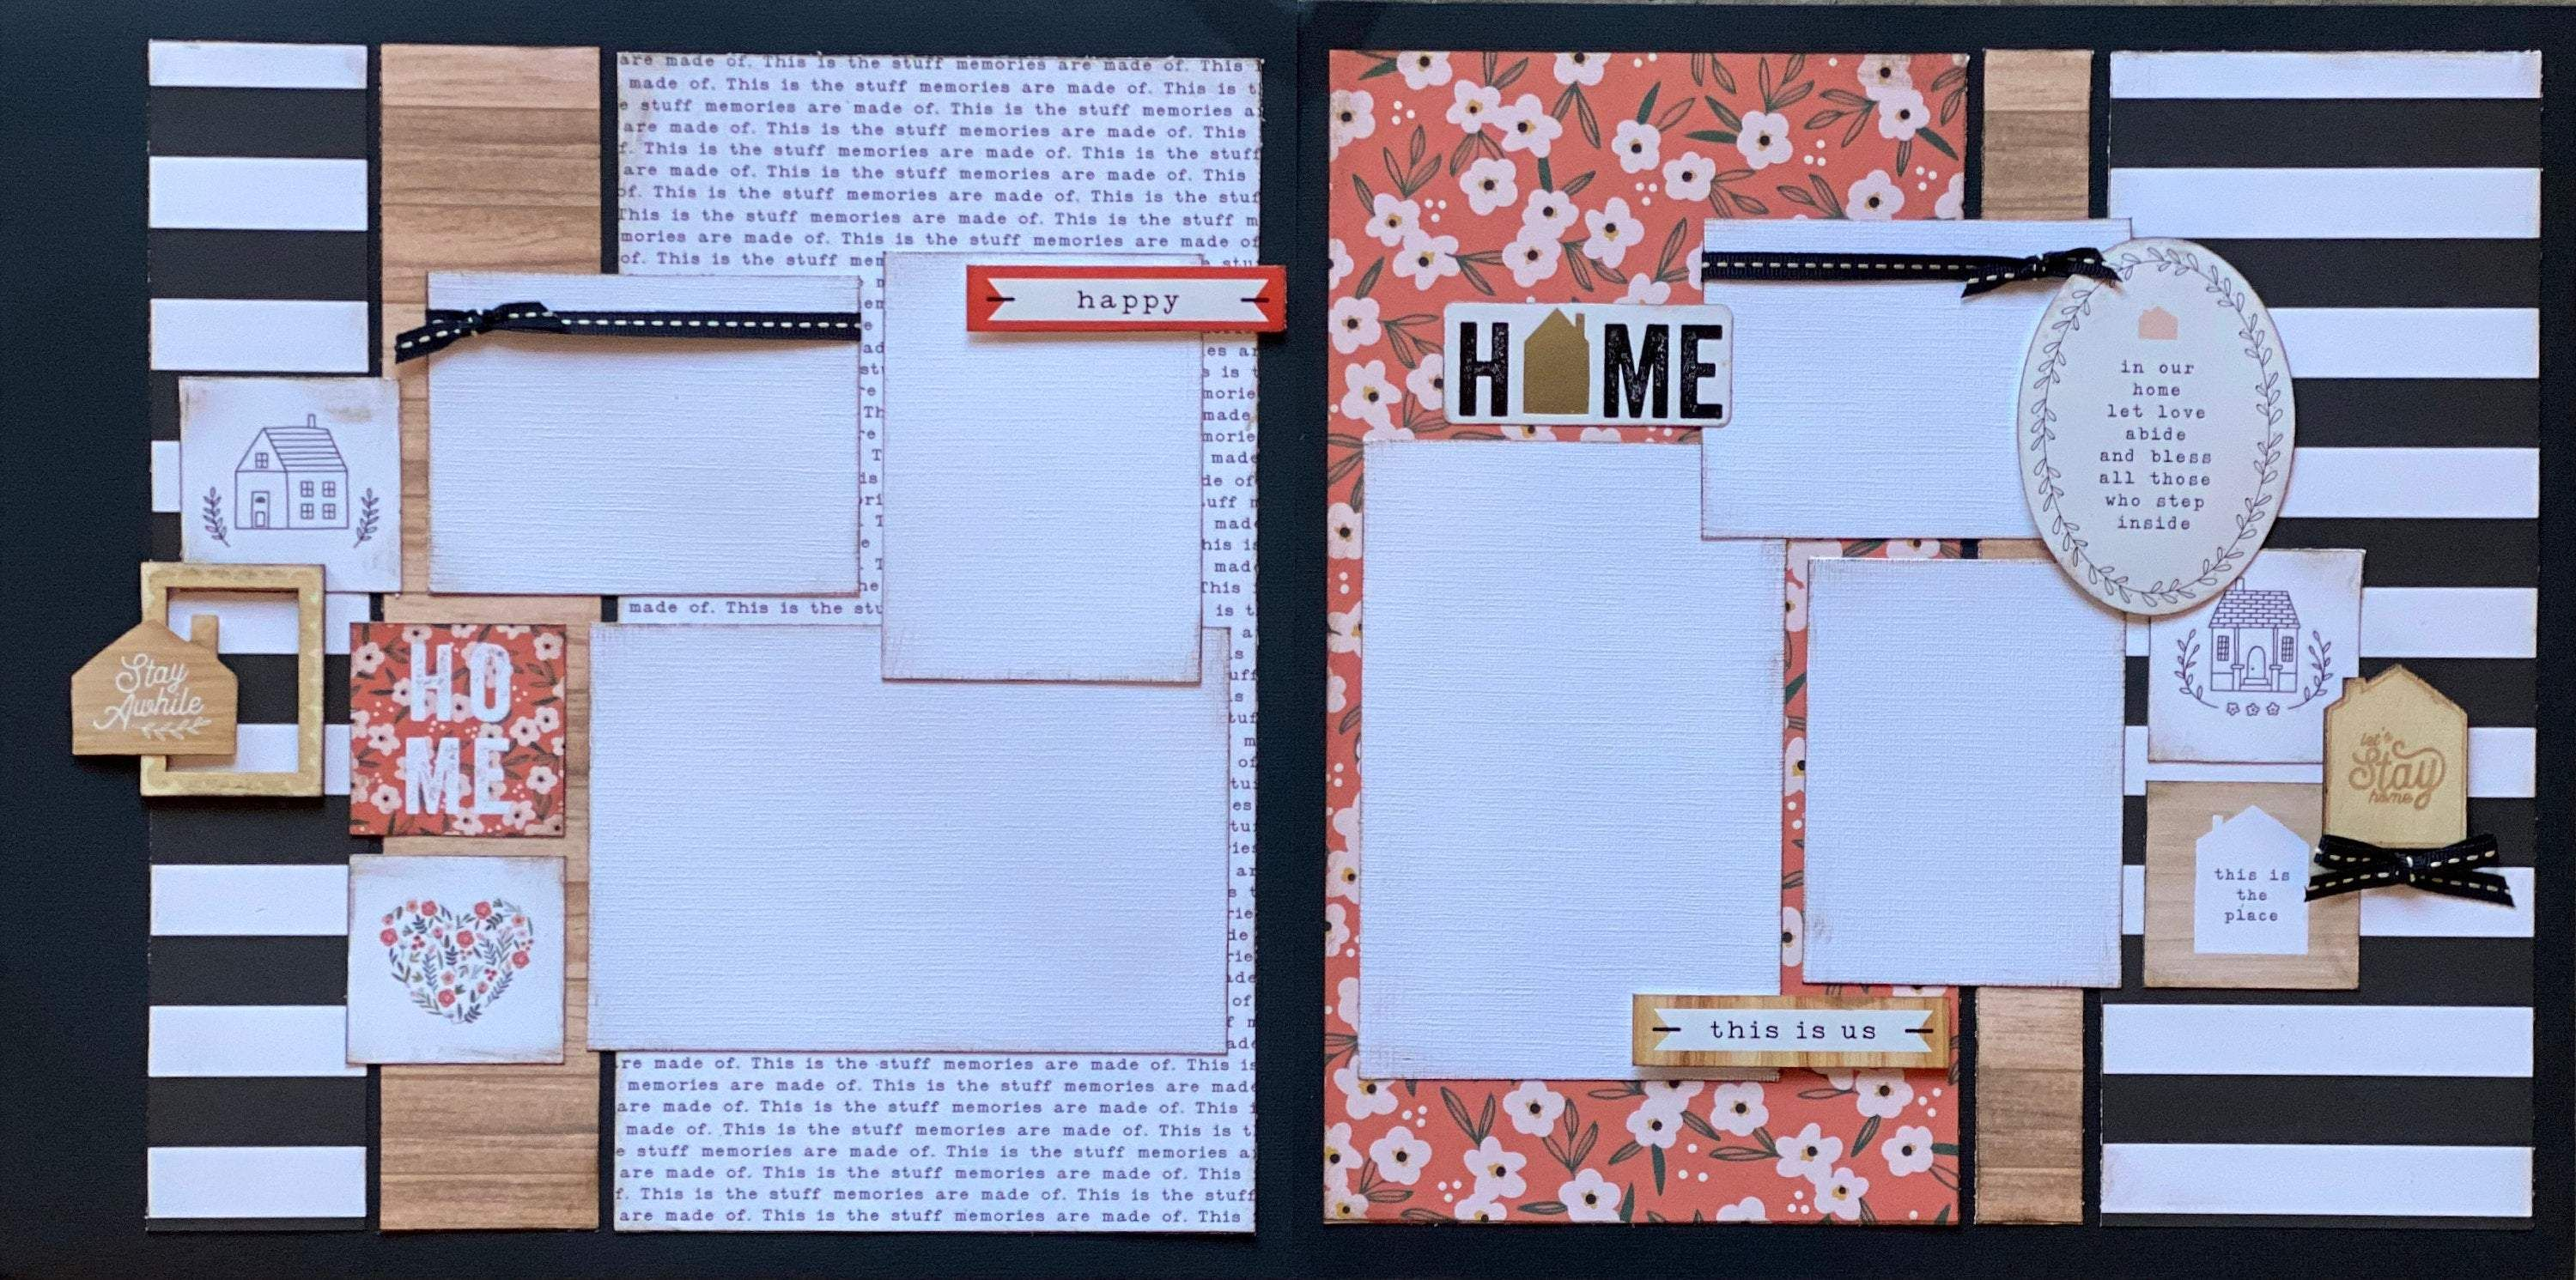 Photo of Stay Awhile – Home 2 page Scrapbooking Layout Kit or Premade Scrapbooking Pages DIY Family craft – DIY Page Kit